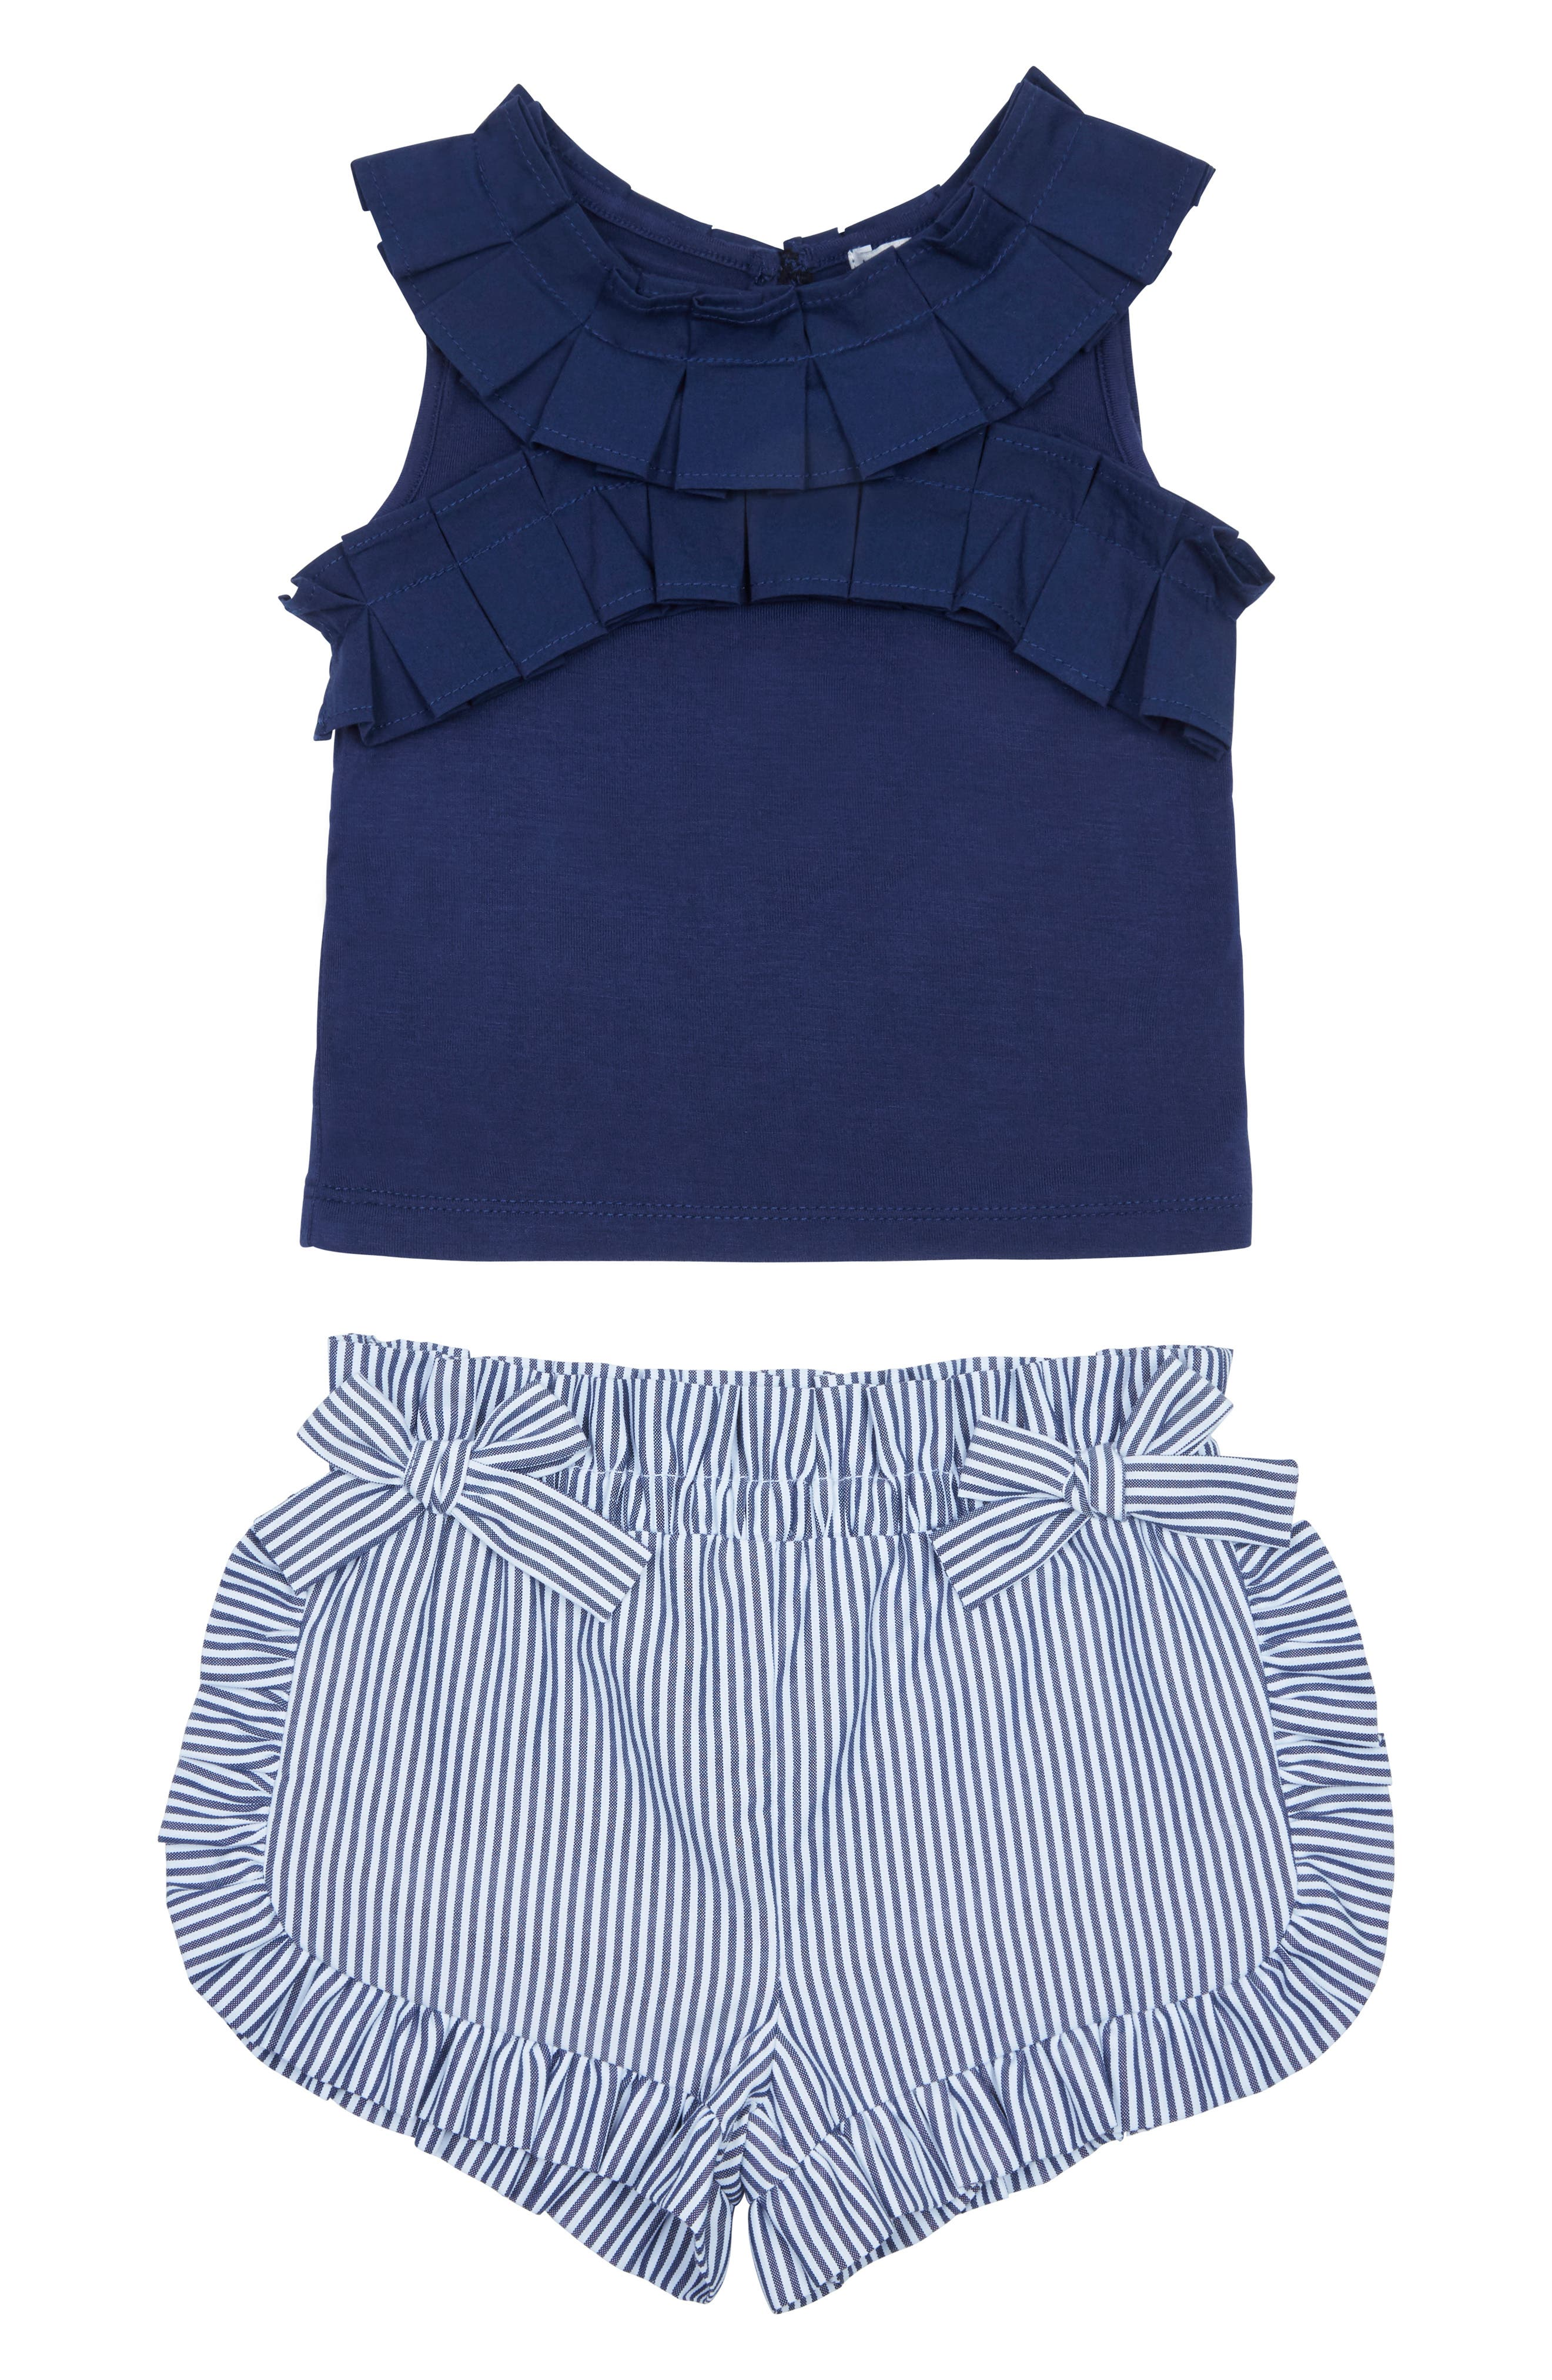 Baby & Toddler Clothing Trend Mark Ralph Lauren Baby Girl Top And Set Bohemian 3m Outfits & Sets